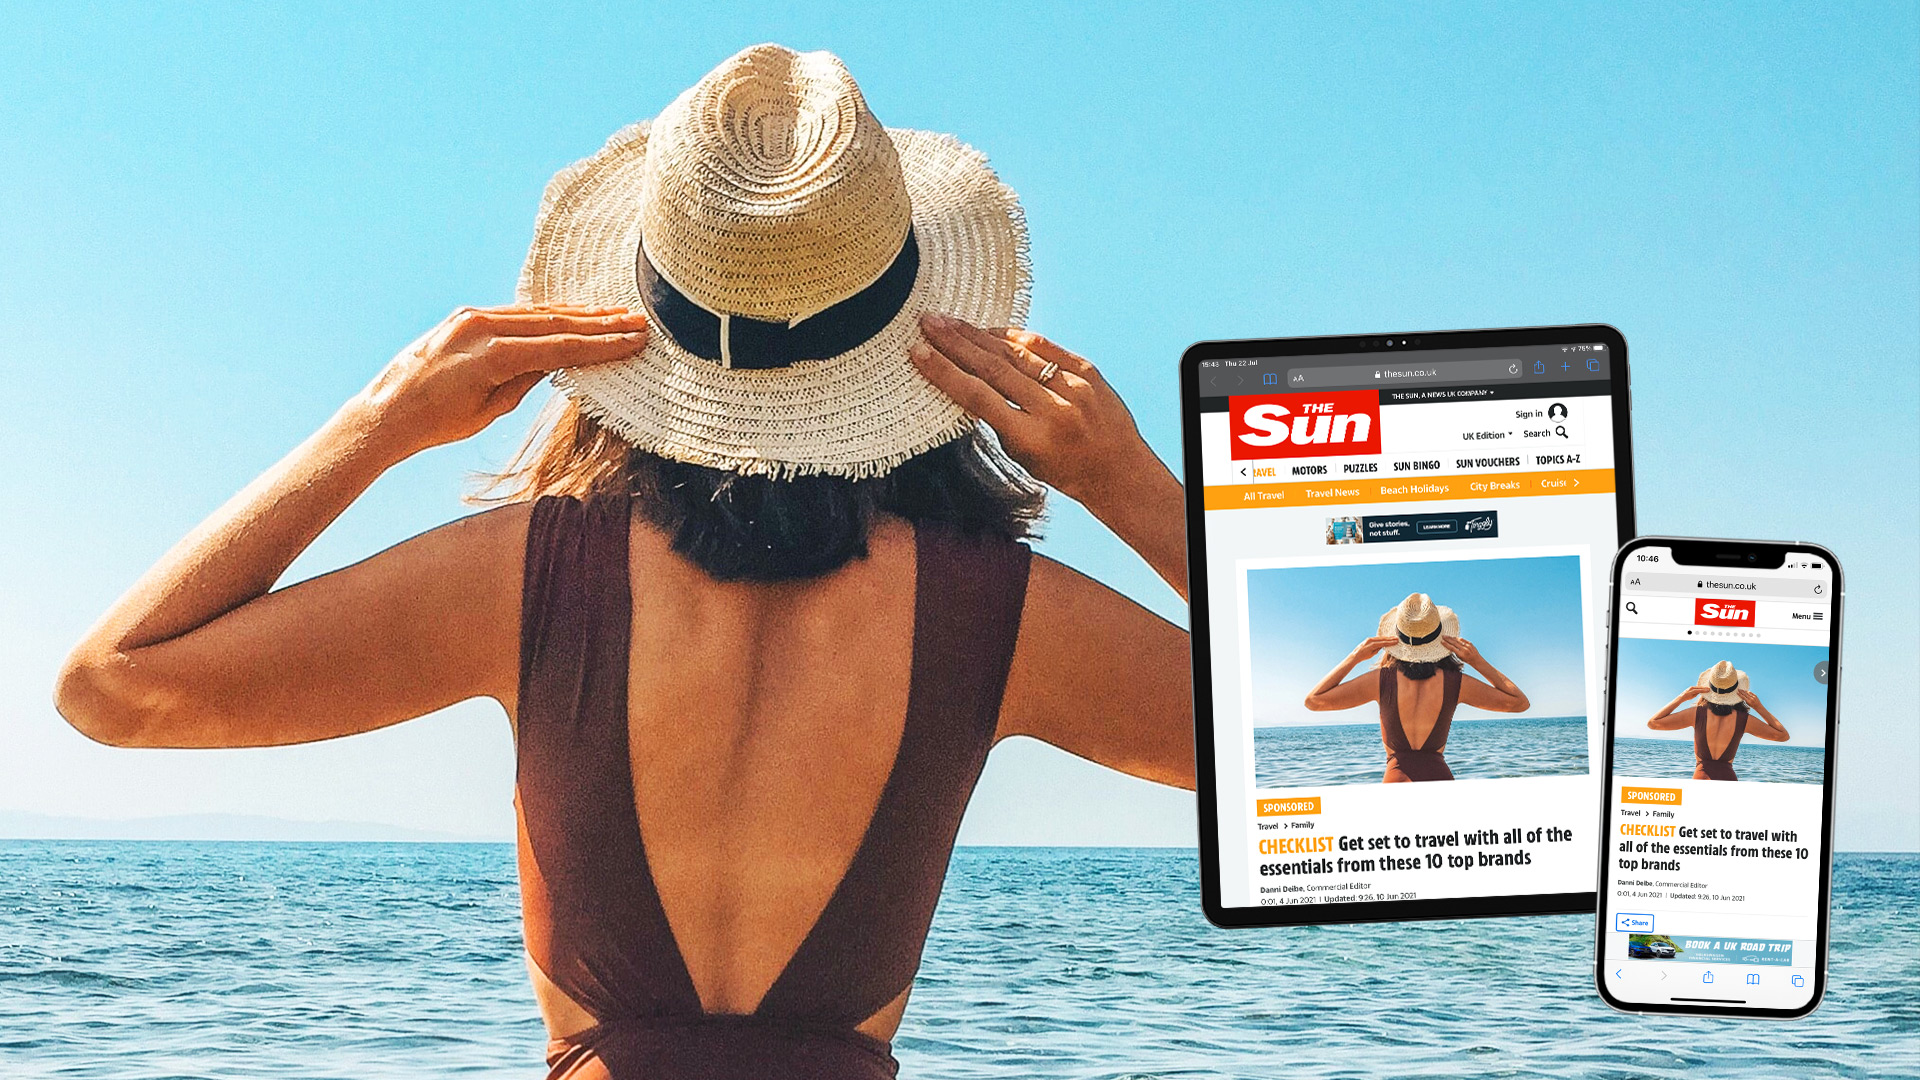 TRAVEL INSPIRATION IN THE SUN ONLINE